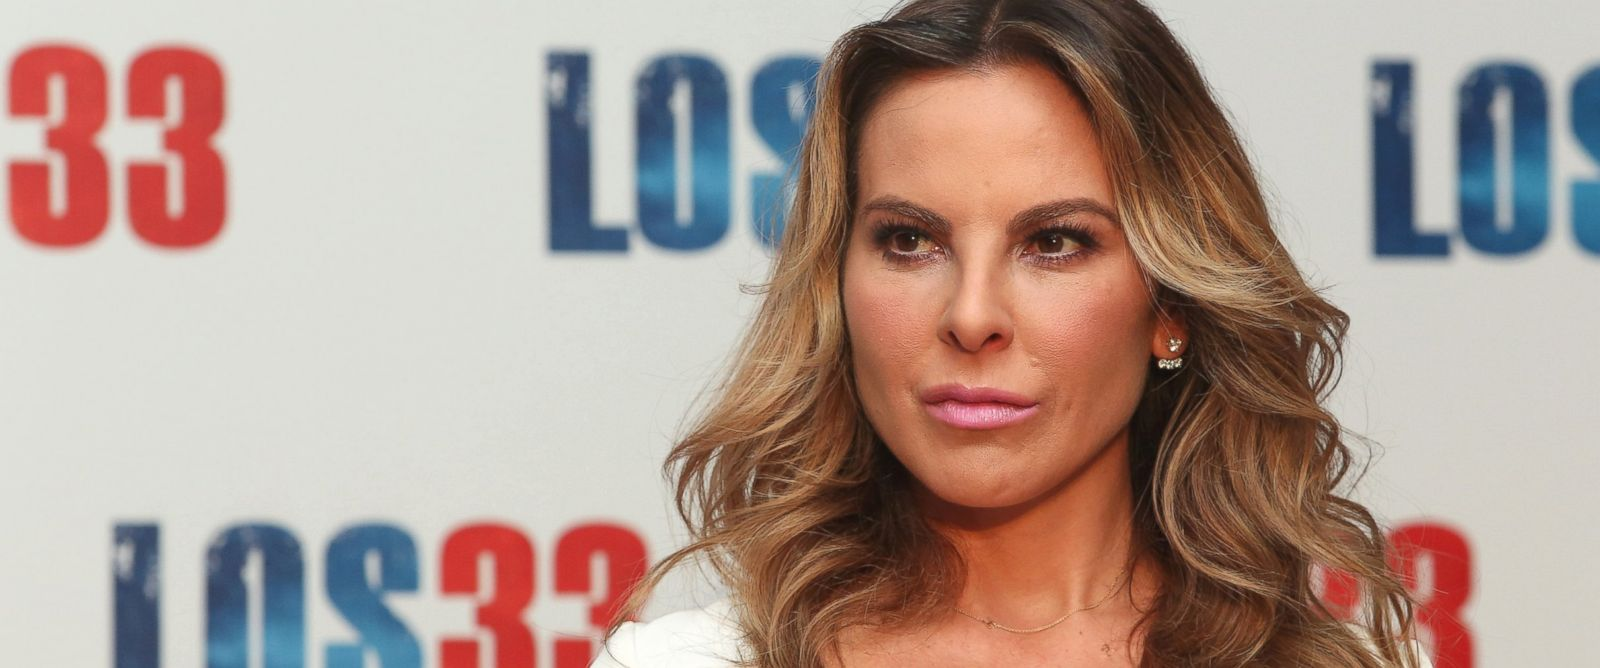 """PHOTO: Kate del Castillo is seen at the """"Los 33"""" press conference at Four Seasons hotel on Aug. 24, 2015 in Mexico City."""